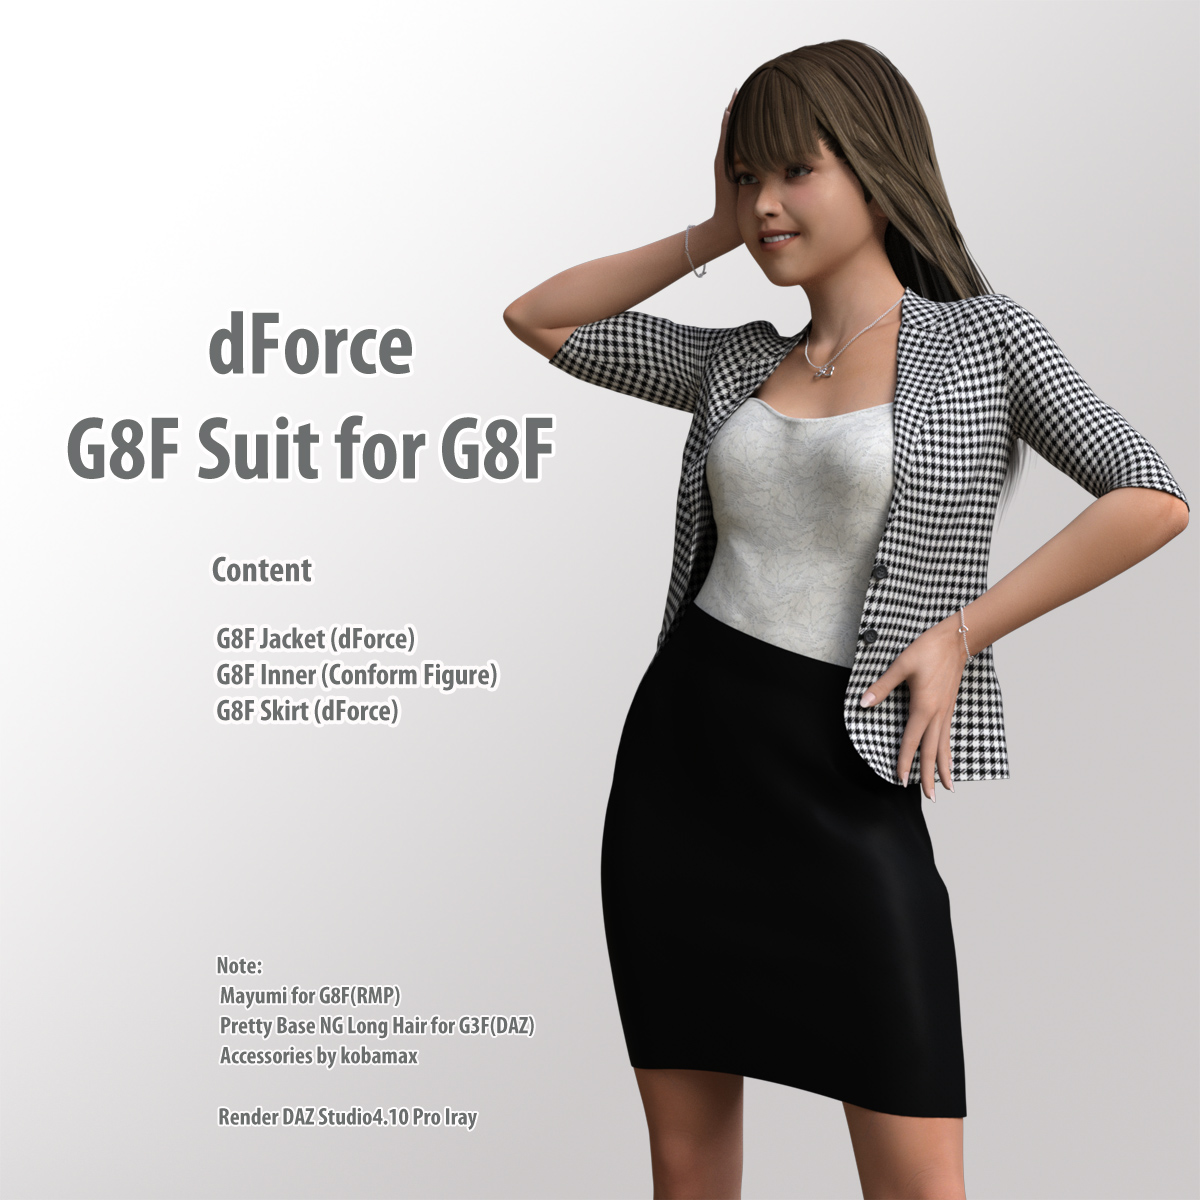 dForce G8F Suit for G8F - Extended License by kobamax